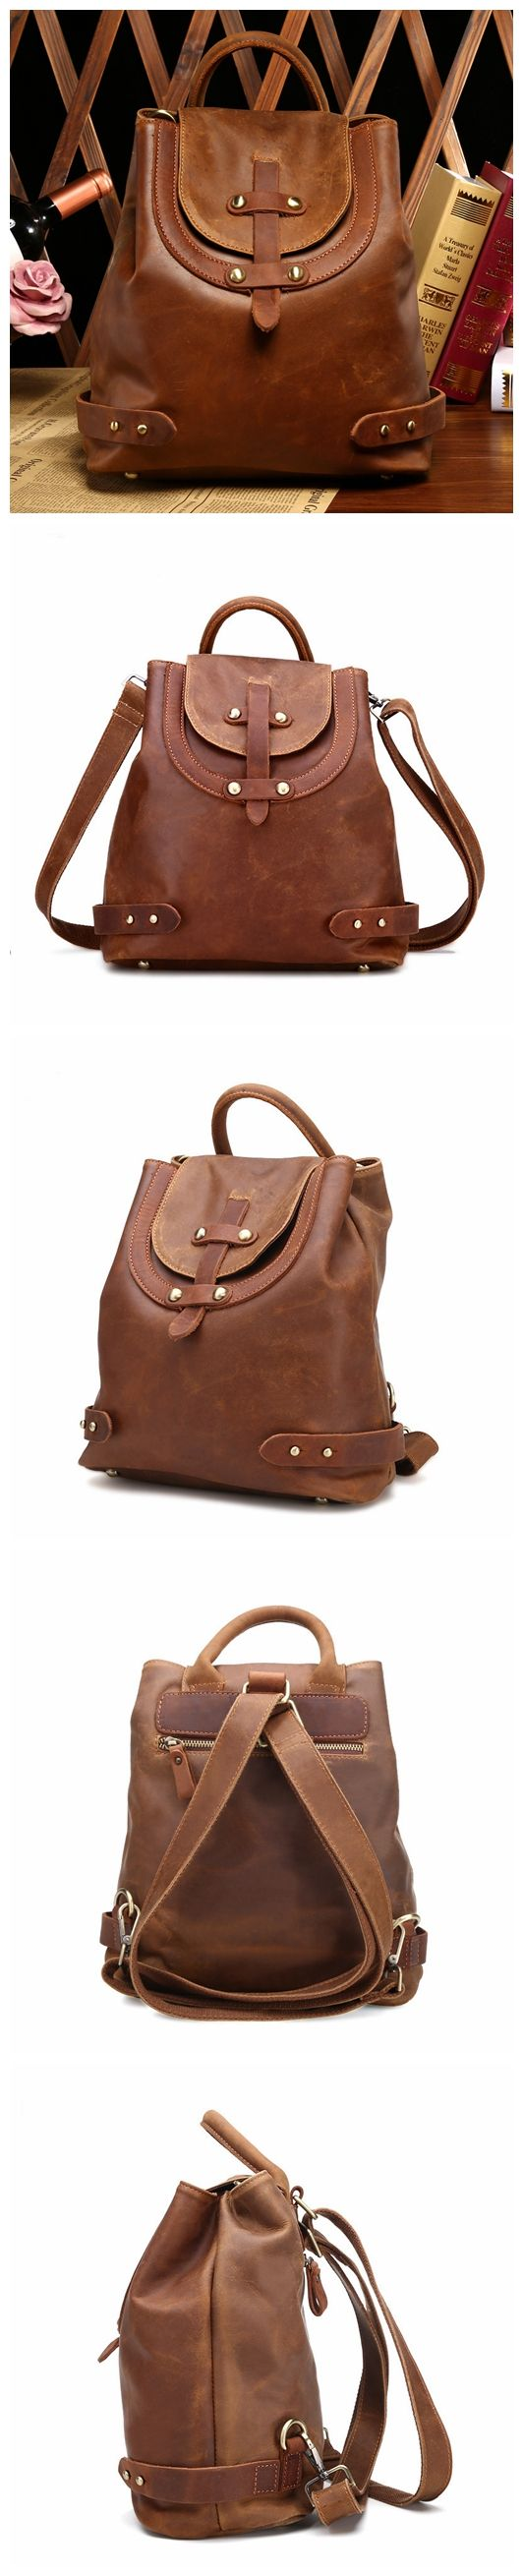 ROCKCOW Fashion Crazy Horse Leather Cowhide Genuine Leather Backpack Bag Woman Casual Style Brown Shopping Bag 3010